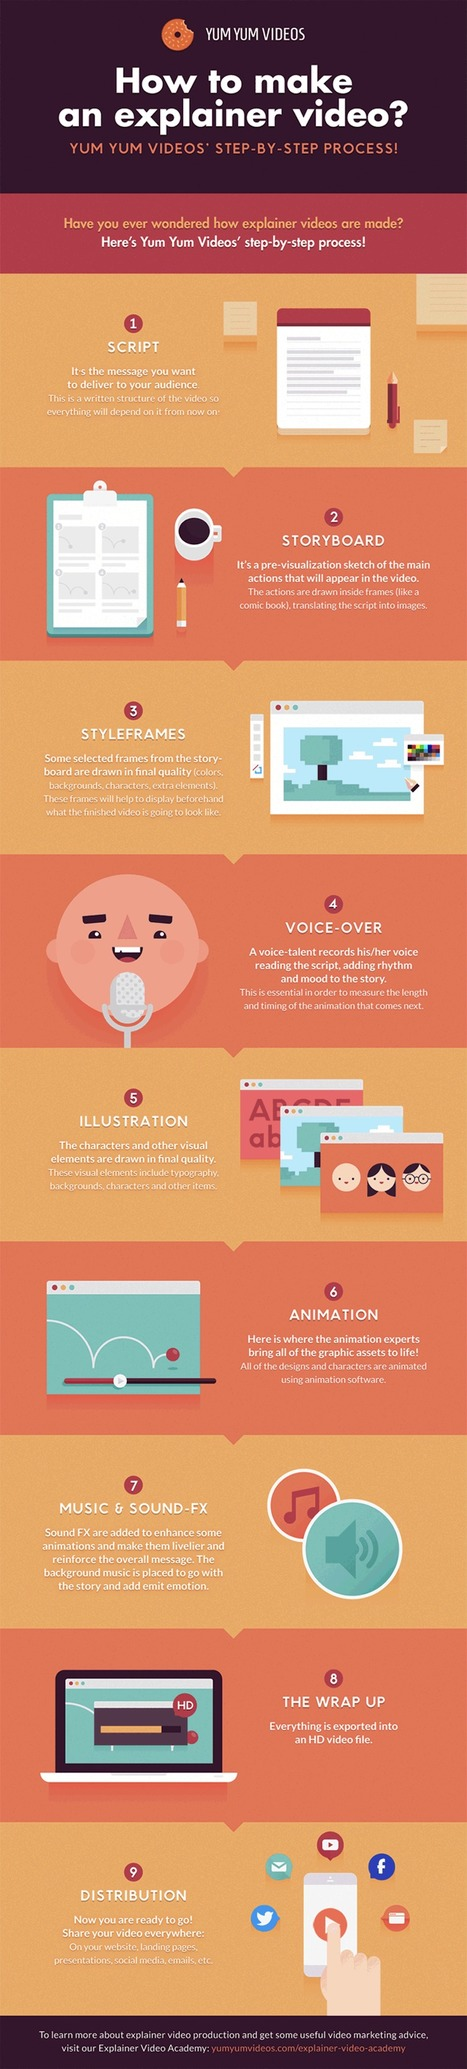 How to Make an Explainer Video: Step-by-Step Instructions [INFOGRAPHIC] | Scriveners' Trappings | Scoop.it